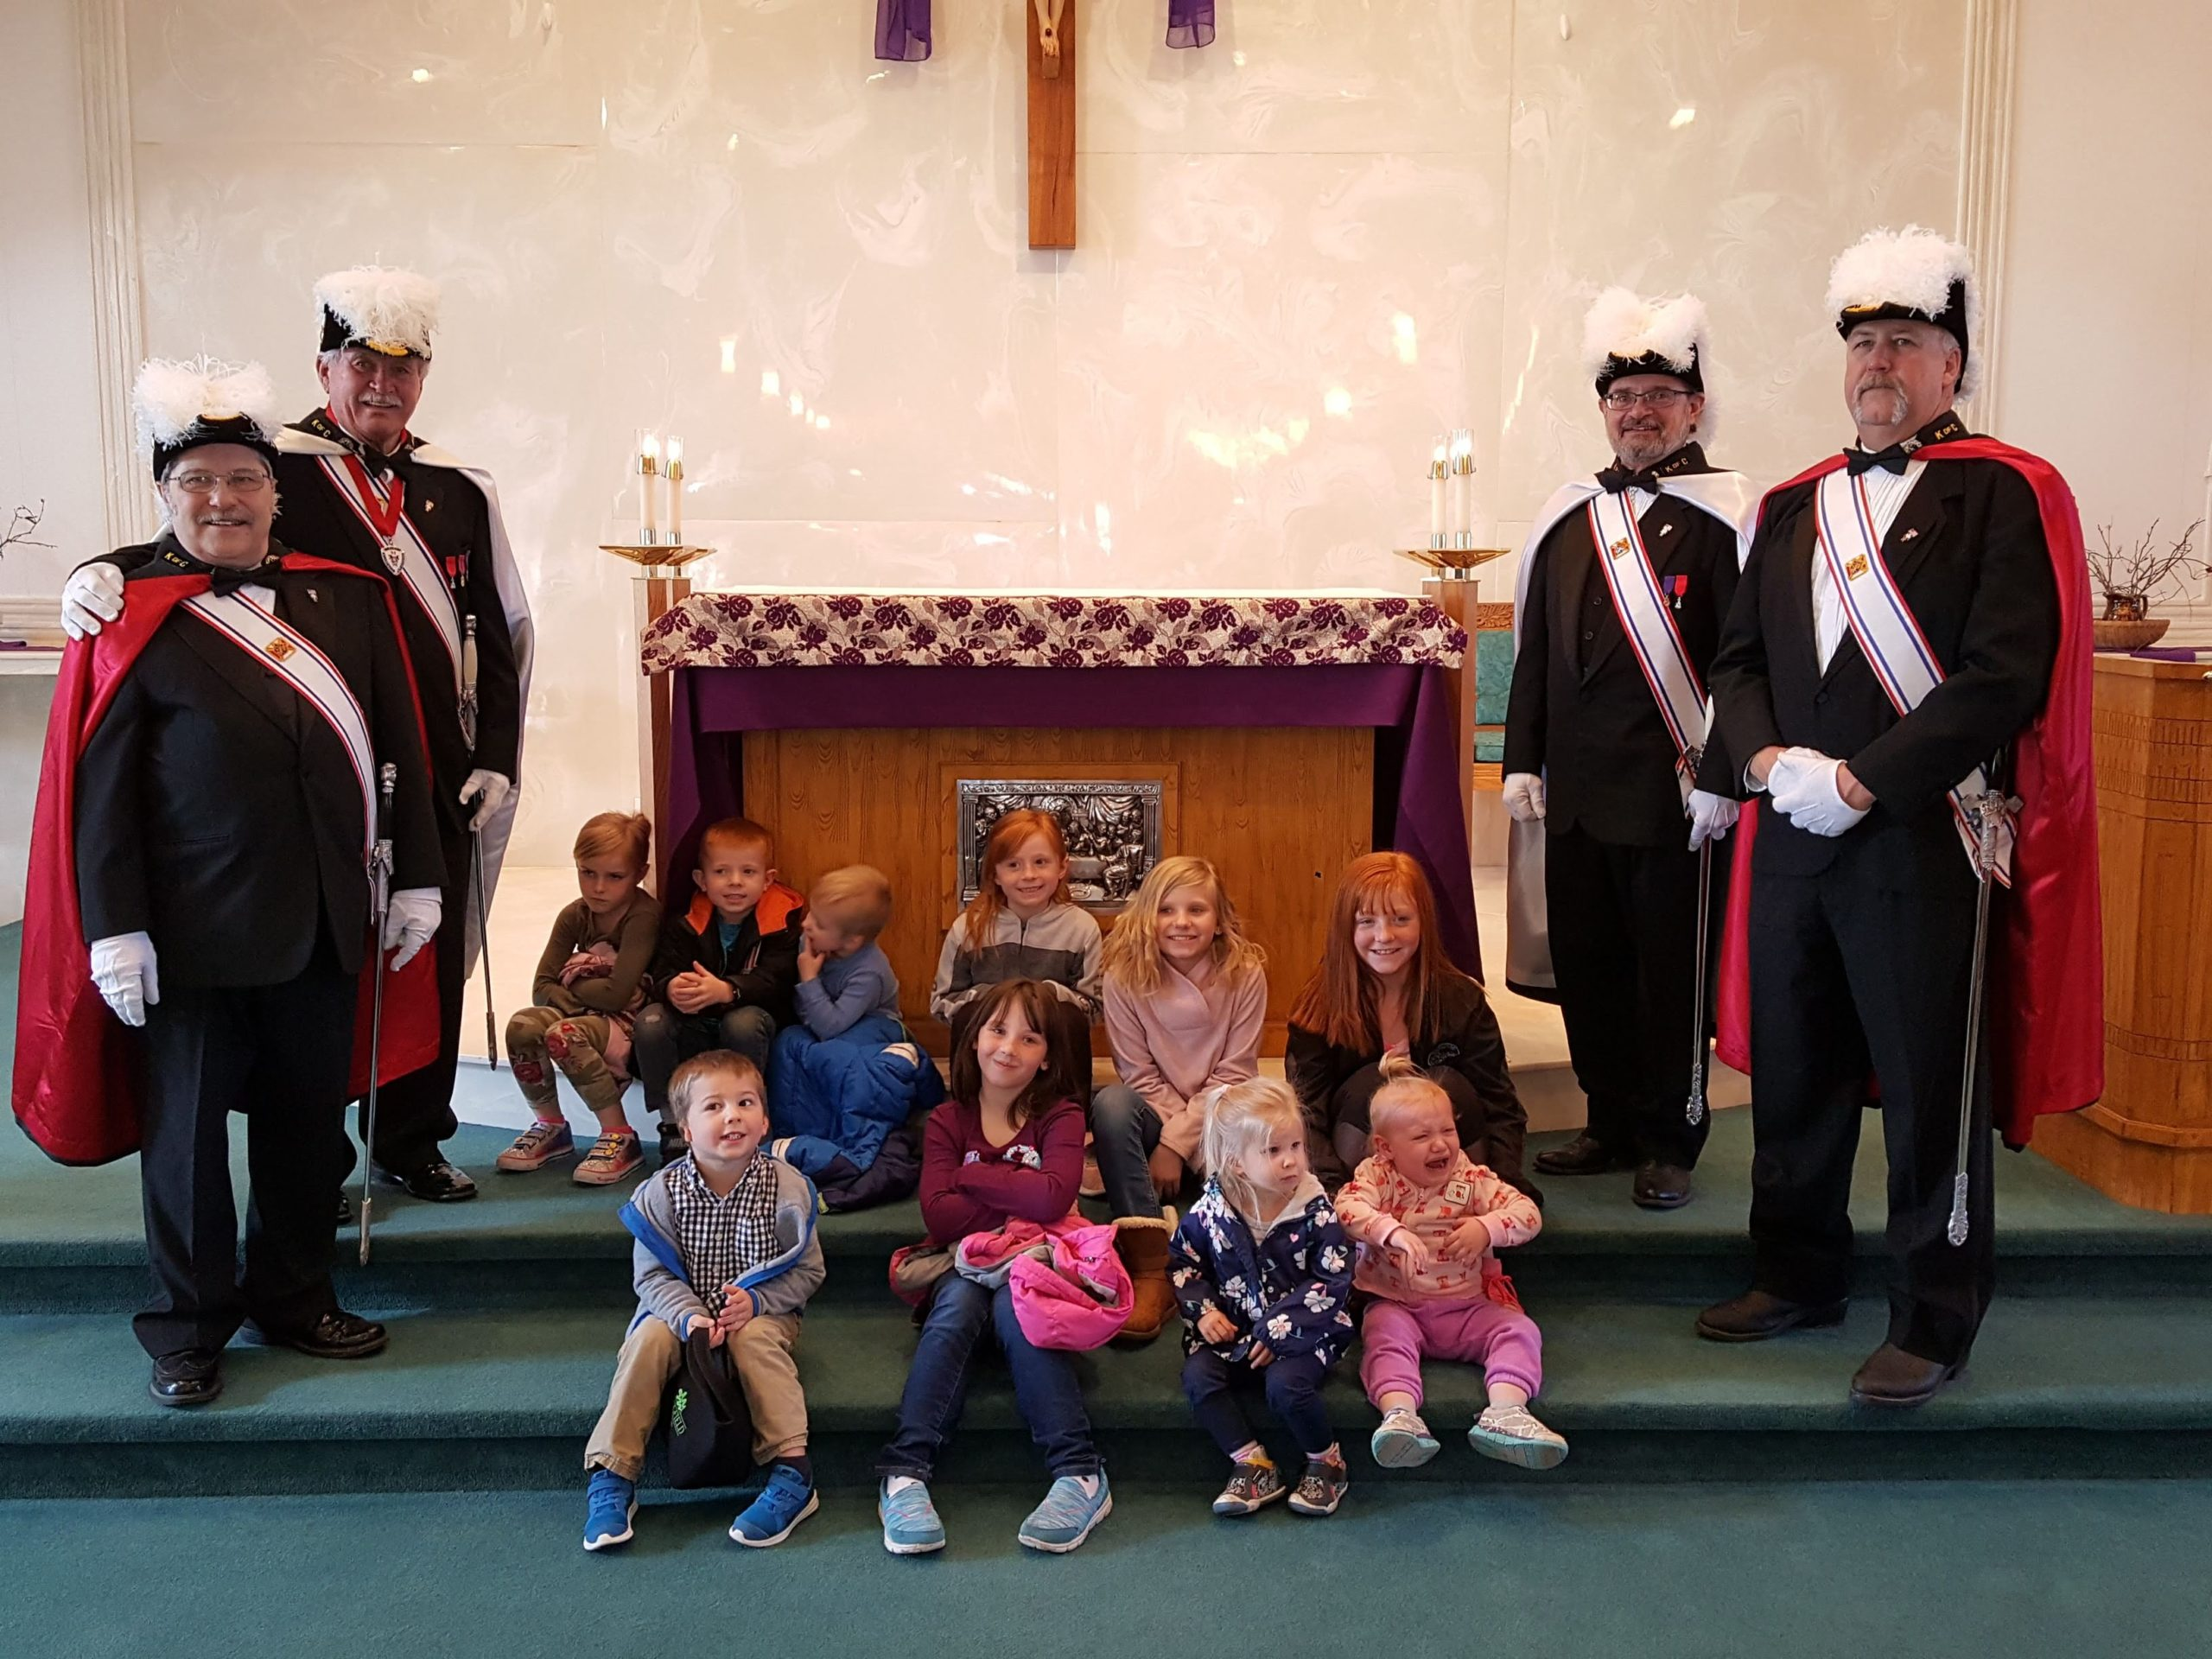 WP4th Degree Knights At Church With Kids